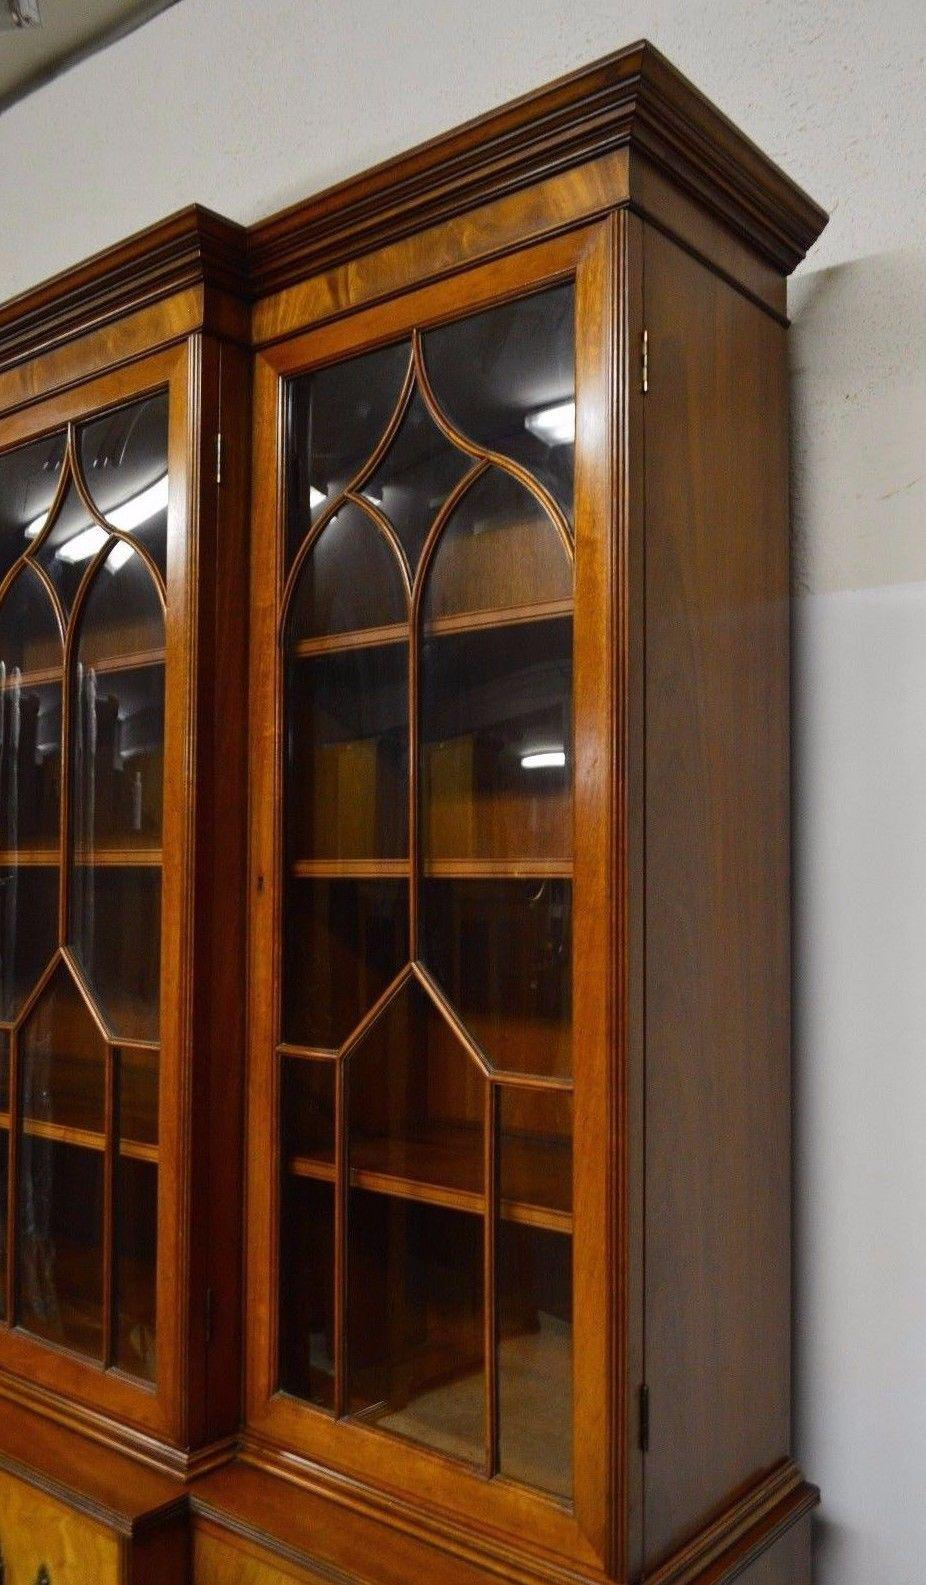 Attirant Kaplan Furniture Beacon Hill Collection Mahogany Breakfront Bookcase    Image 3 Of 11